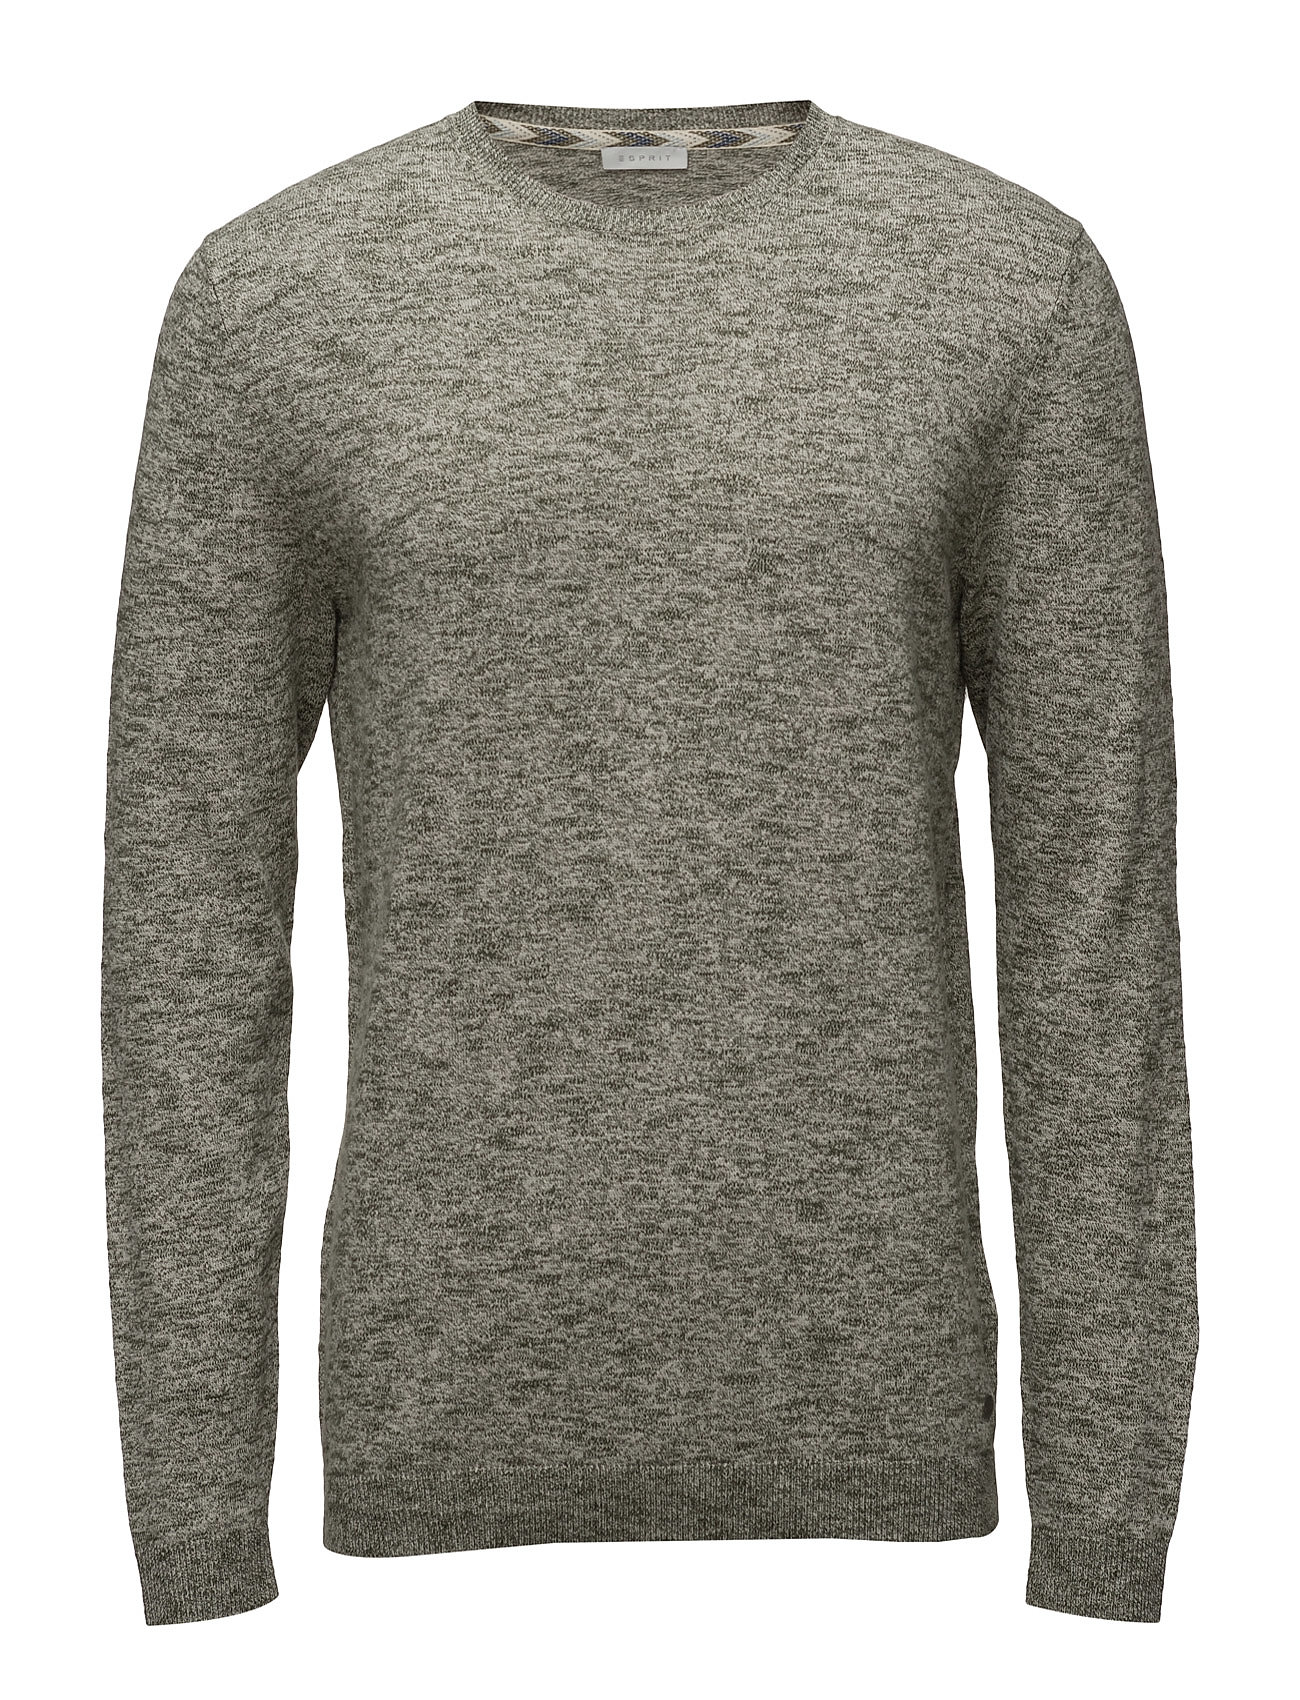 Image of Sweaters (2630190591)